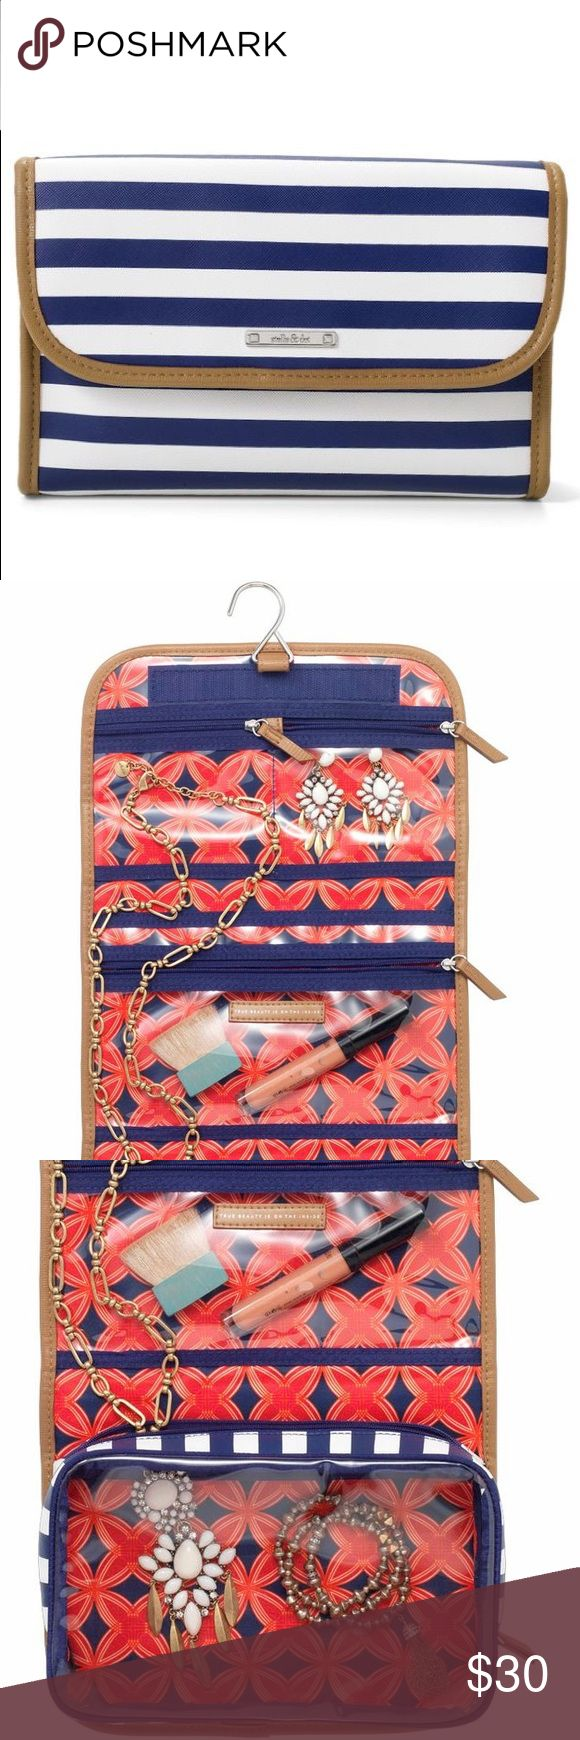 """Stella & Dot Hang On Travel Case Navy and white travel case - has hanger to hang up and lots of pockets to store makeup, jewelry and other travel essentials. Durable construction and timeless pattern! Gently used, although it looks new - I even left the protective covering on the S&D nameplate. Measures 91/2"""" X 6 1/2"""" folded, 9 1/2"""" X 19 1/2"""" unfolded Stella & Dot Bags Cosmetic Bags & Cases"""